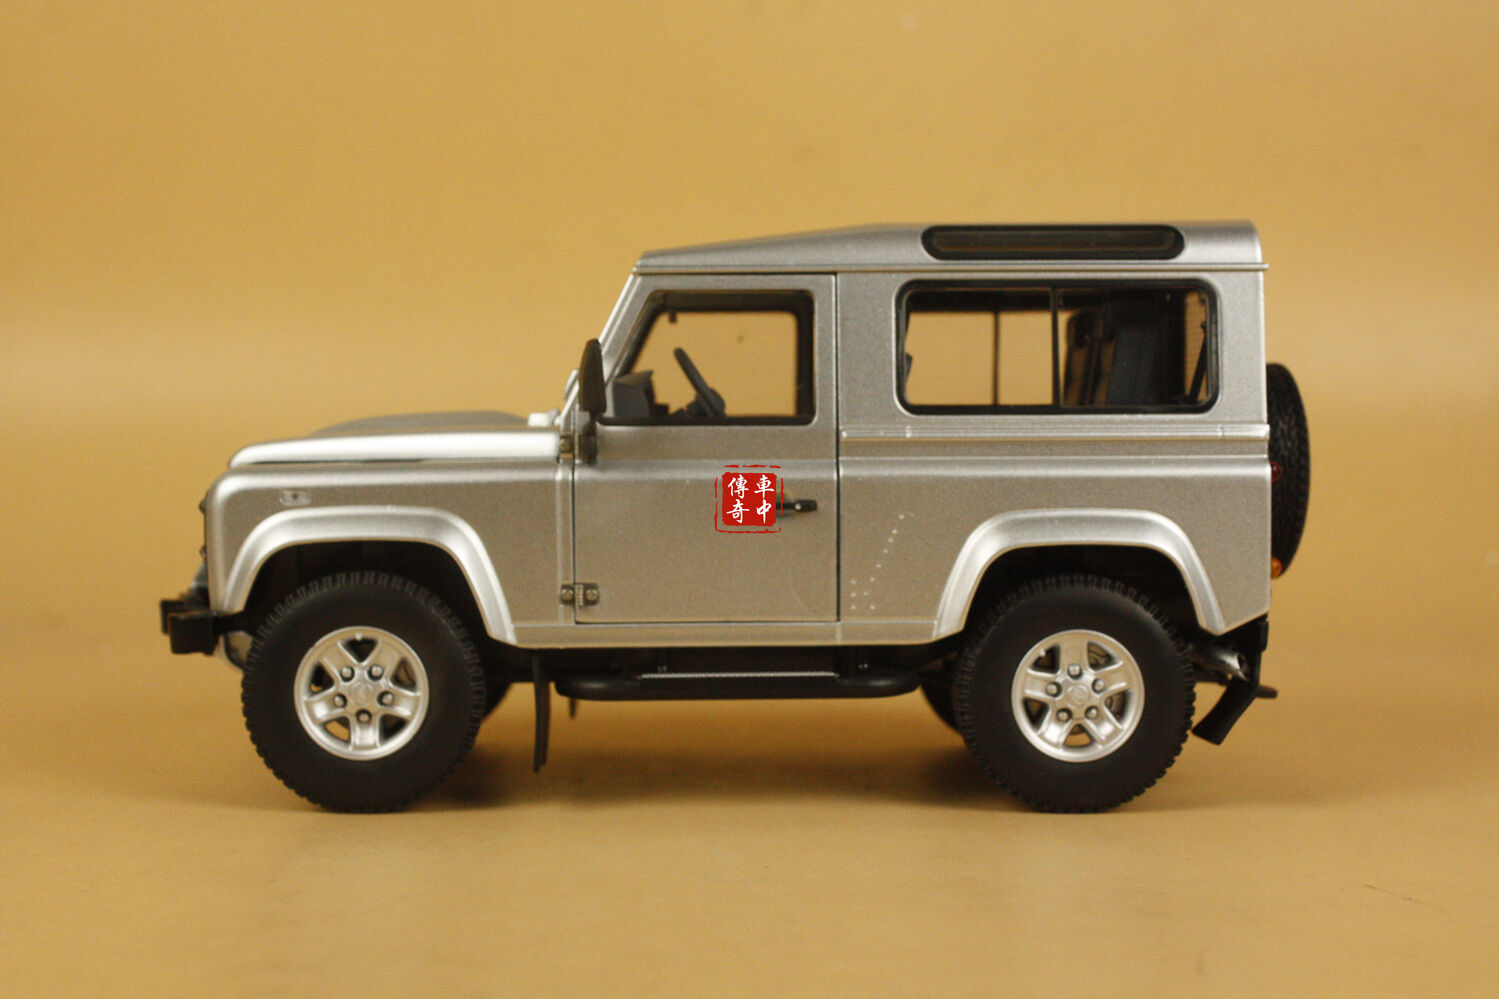 1 18 Kyosho Land Rover Defender 90 indus argento No. 08901is Die Cast Modelo + Regalo